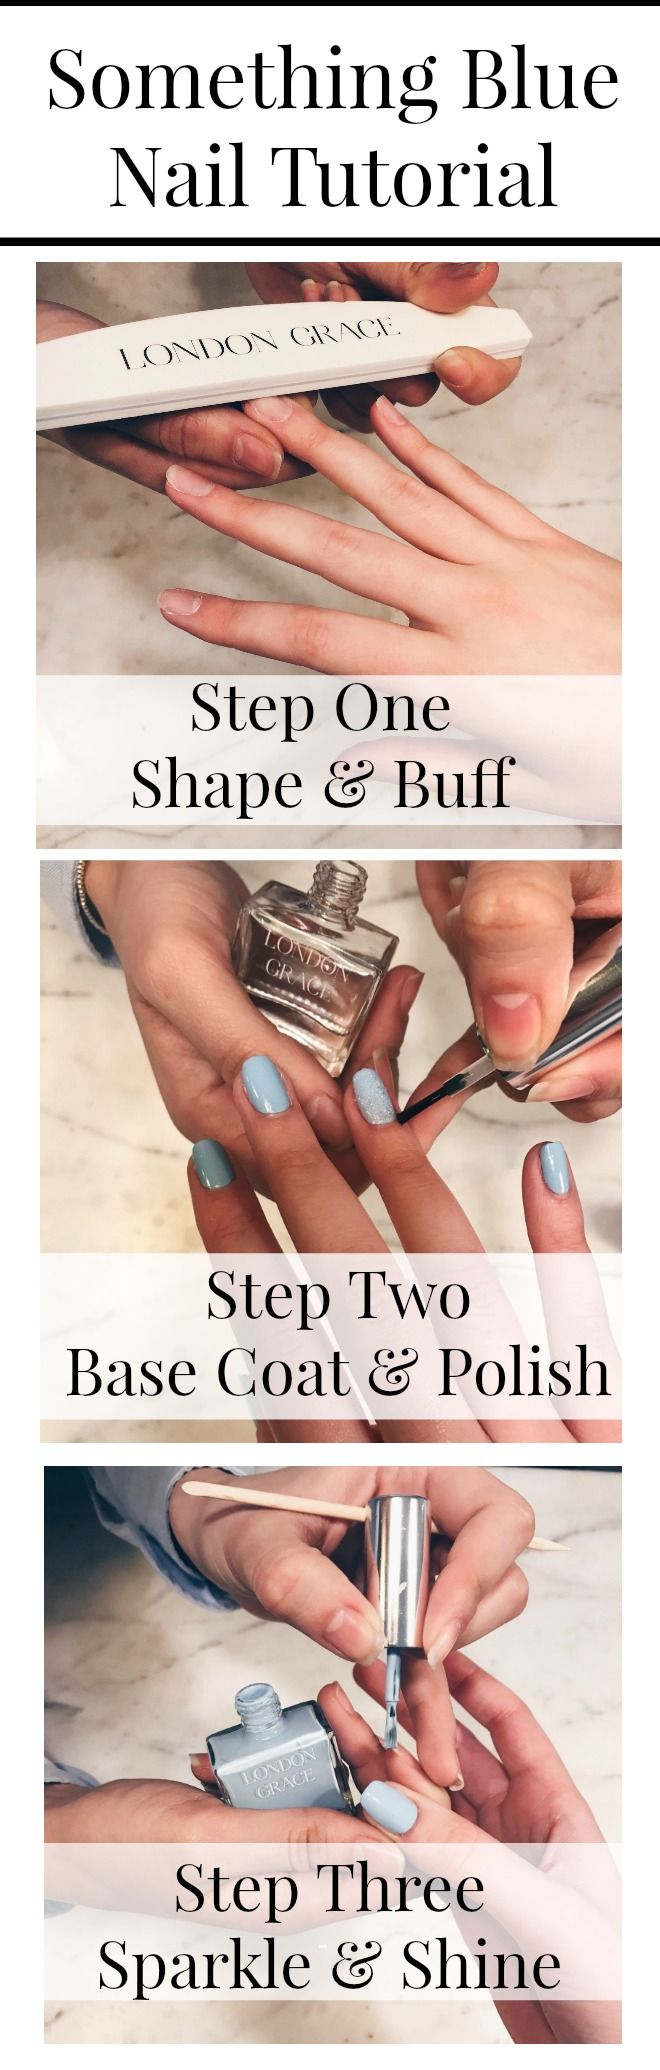 Hello Hens! Today we have collaborated with super fancy nail salon London Grace to bring you a hen party manicure tutorial. The 'Some Thing Blue' nail tutorial will teach you how to create this pretty, feminine & fresh look using cool blue tones with a fun pop of glitter. Perfect for a bride to be celebrating her hen party! This step by step tutorial will have your nails buffed and polished to perfection!  #HenParty #HenPartyIdeas #HenPartyManicure #Manicure #nailtutorial